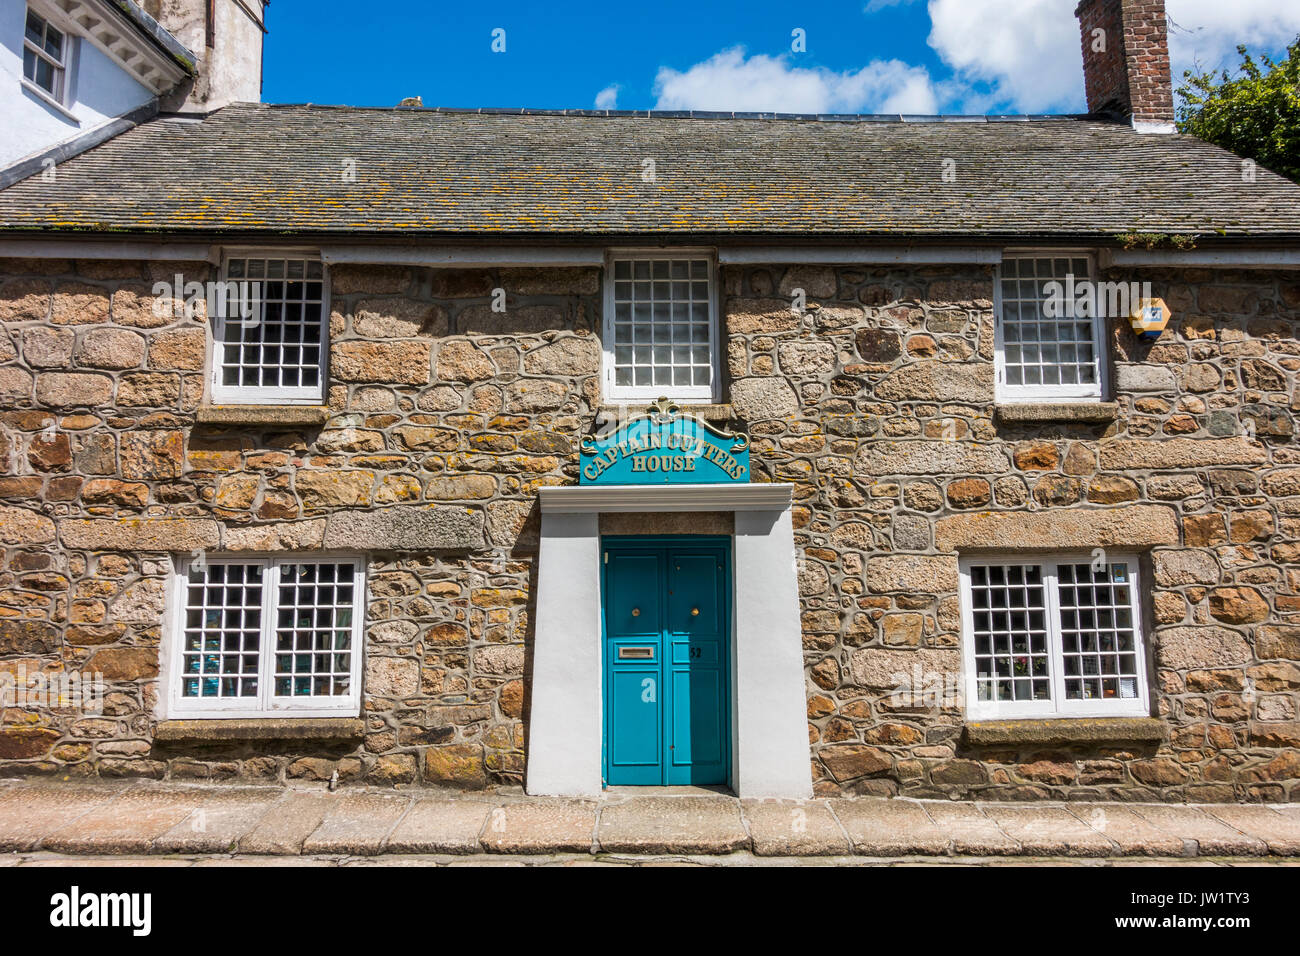 Captain Cutters House (traditional tobacconist), Chapel Street, Penzance, Cornwall, England, UK. - Stock Image